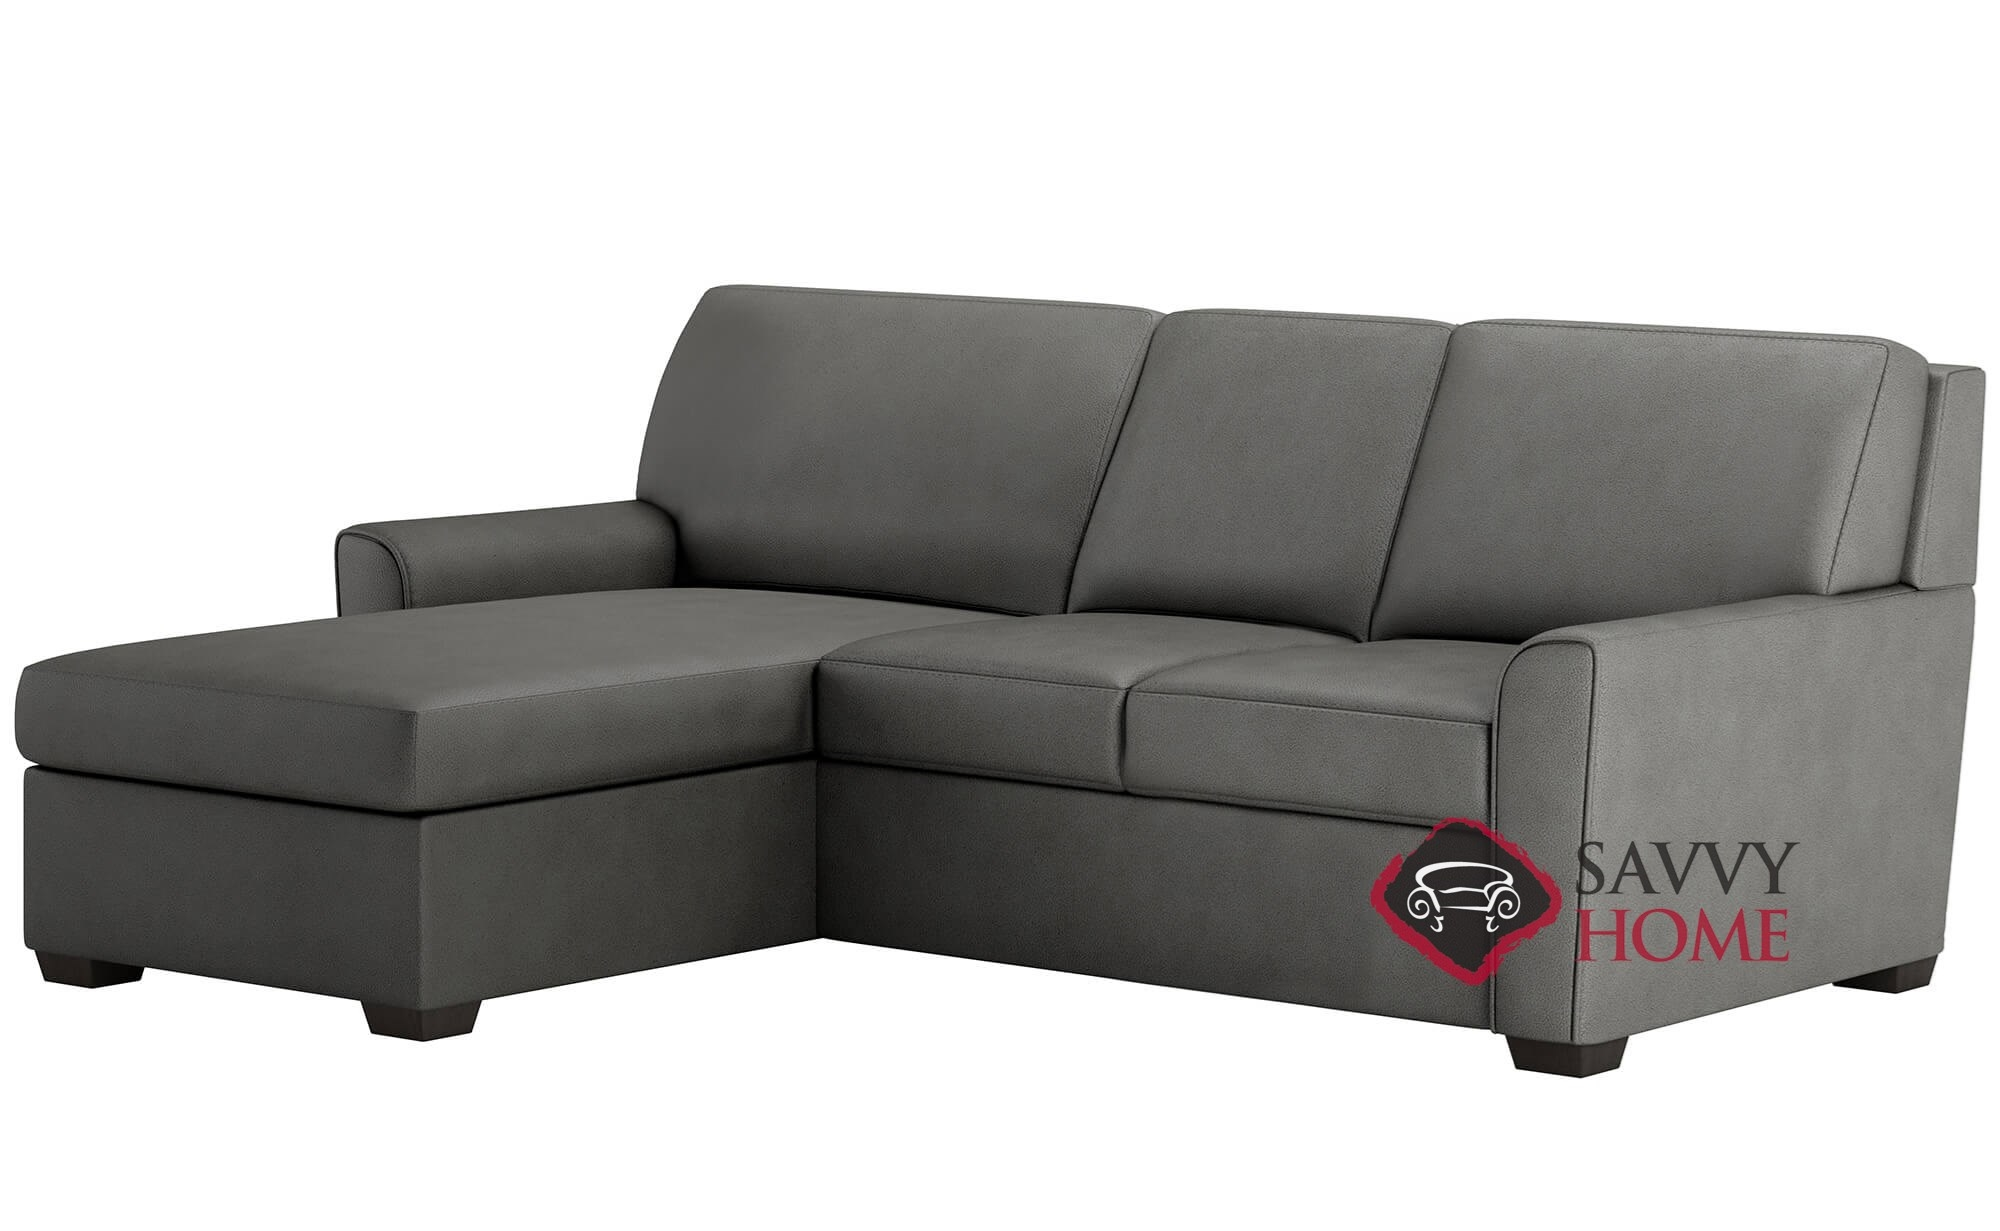 Klein Leather Sleeper Sofas Queen By American Leather Is